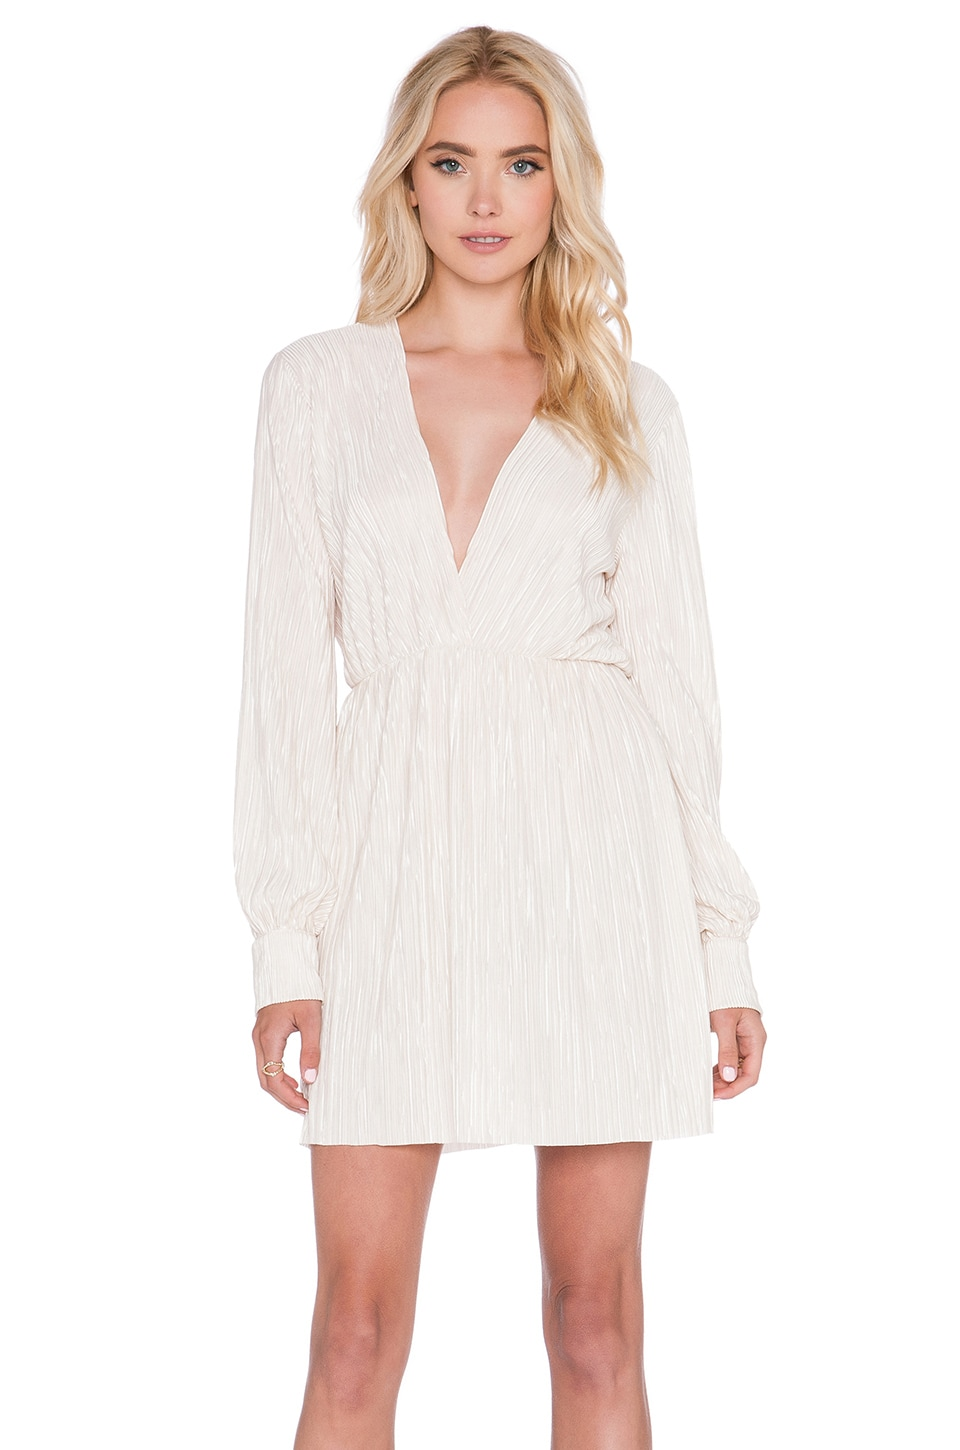 OH MY LOVE Best Of My Love Pleat Dress in White